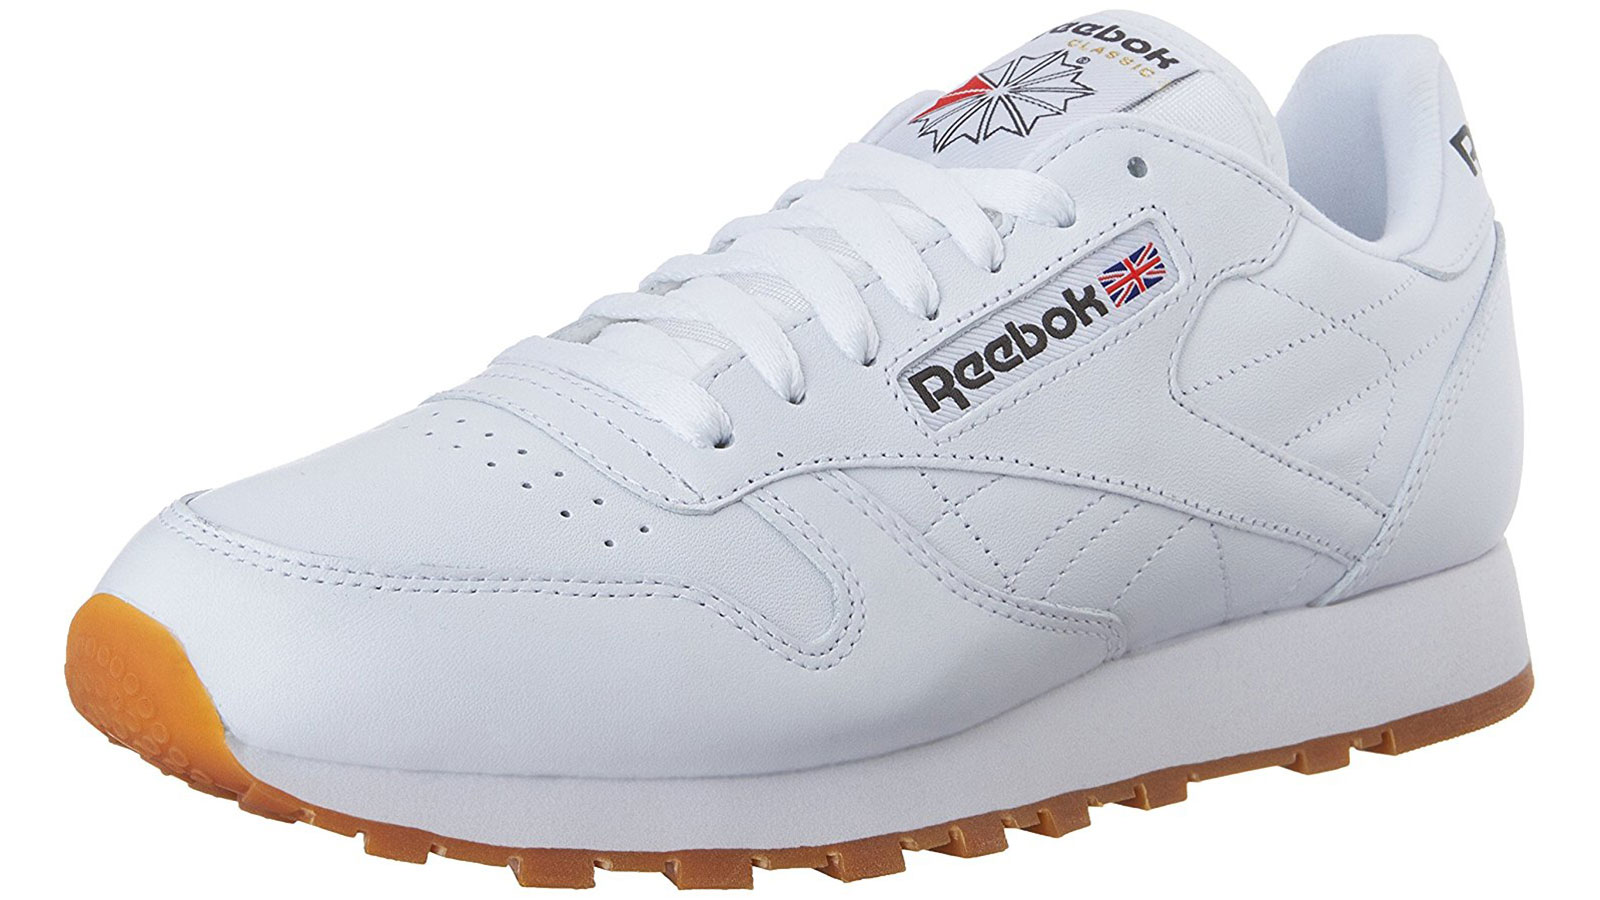 Reebok Classic Leather White Men's Sneaker | best men's white sneakers